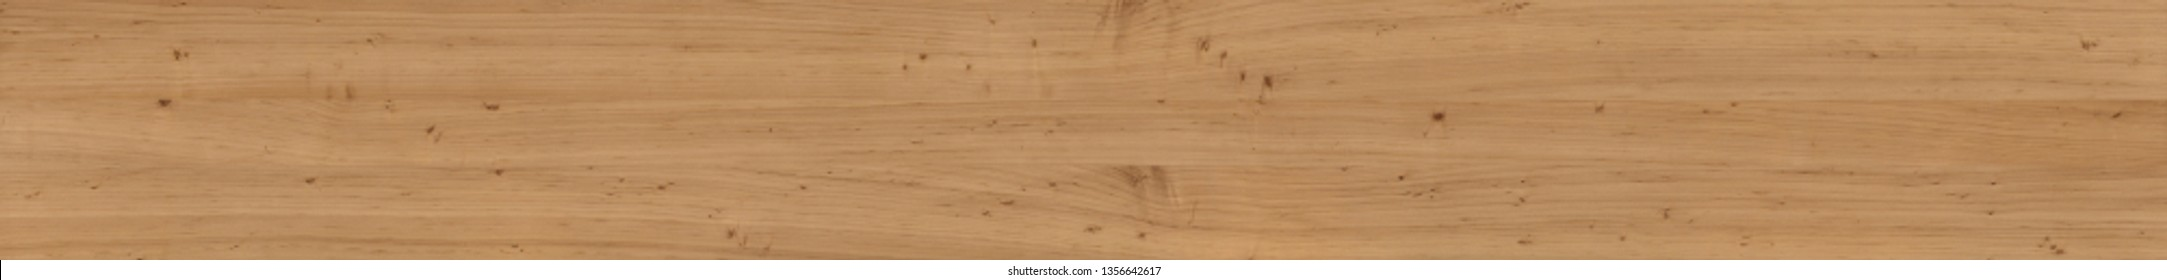 Larch wood background texture for website banner.